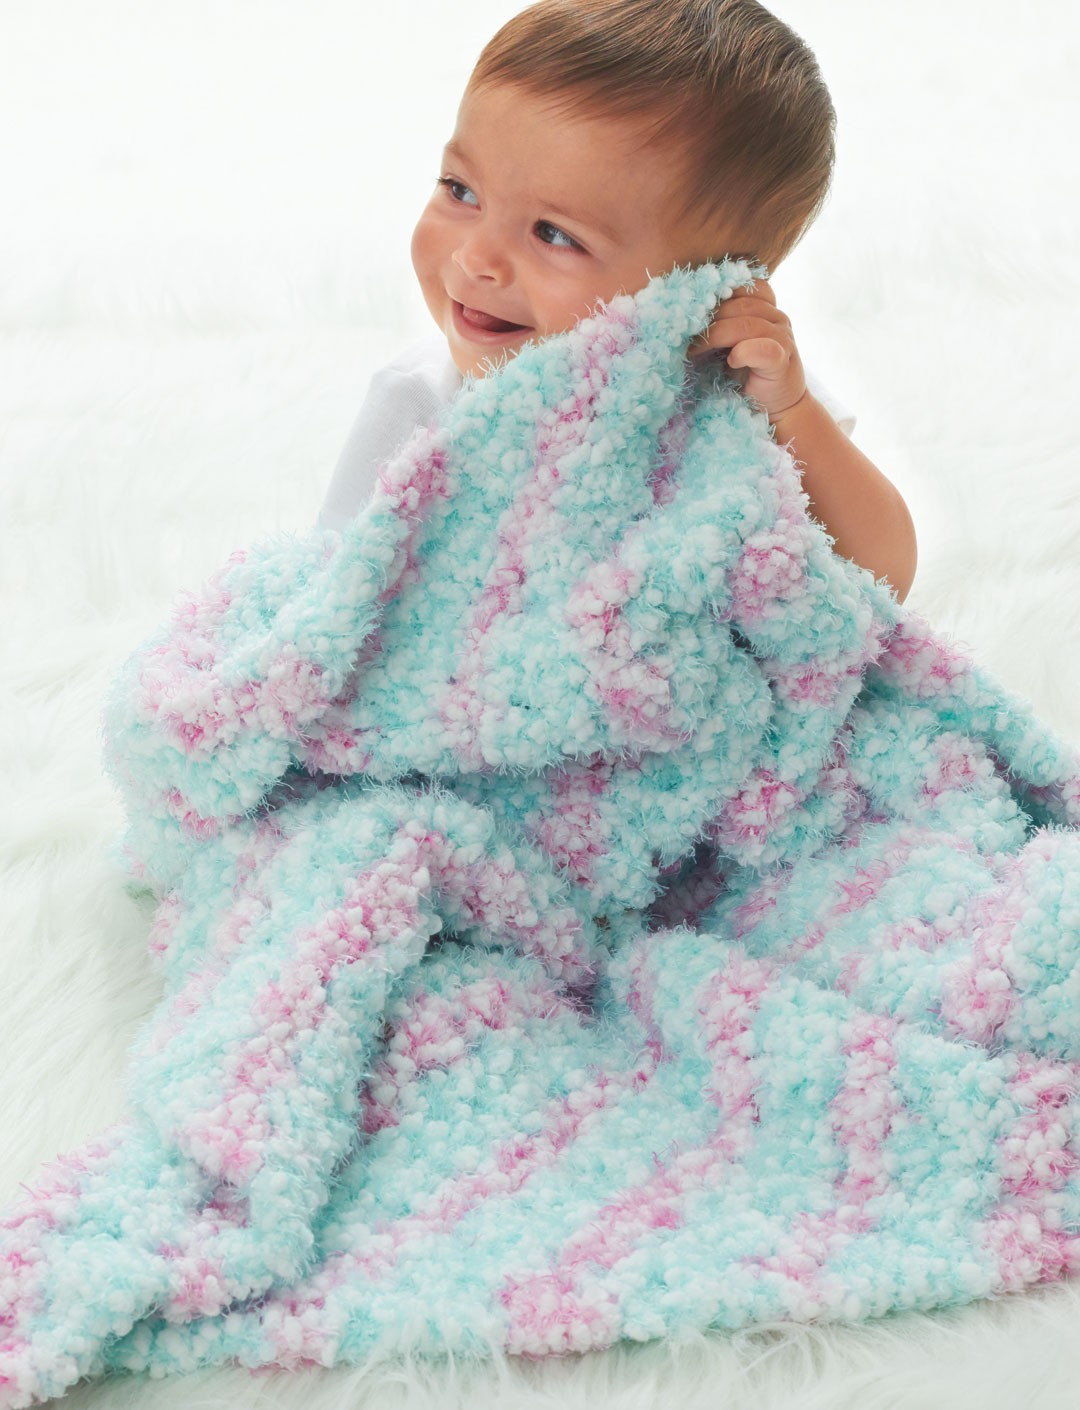 Bernat Crochet Baby Blanket Elegant Bernat Corner to Corner Blanket Crochet Pattern Of Wonderful 44 Models Bernat Crochet Baby Blanket